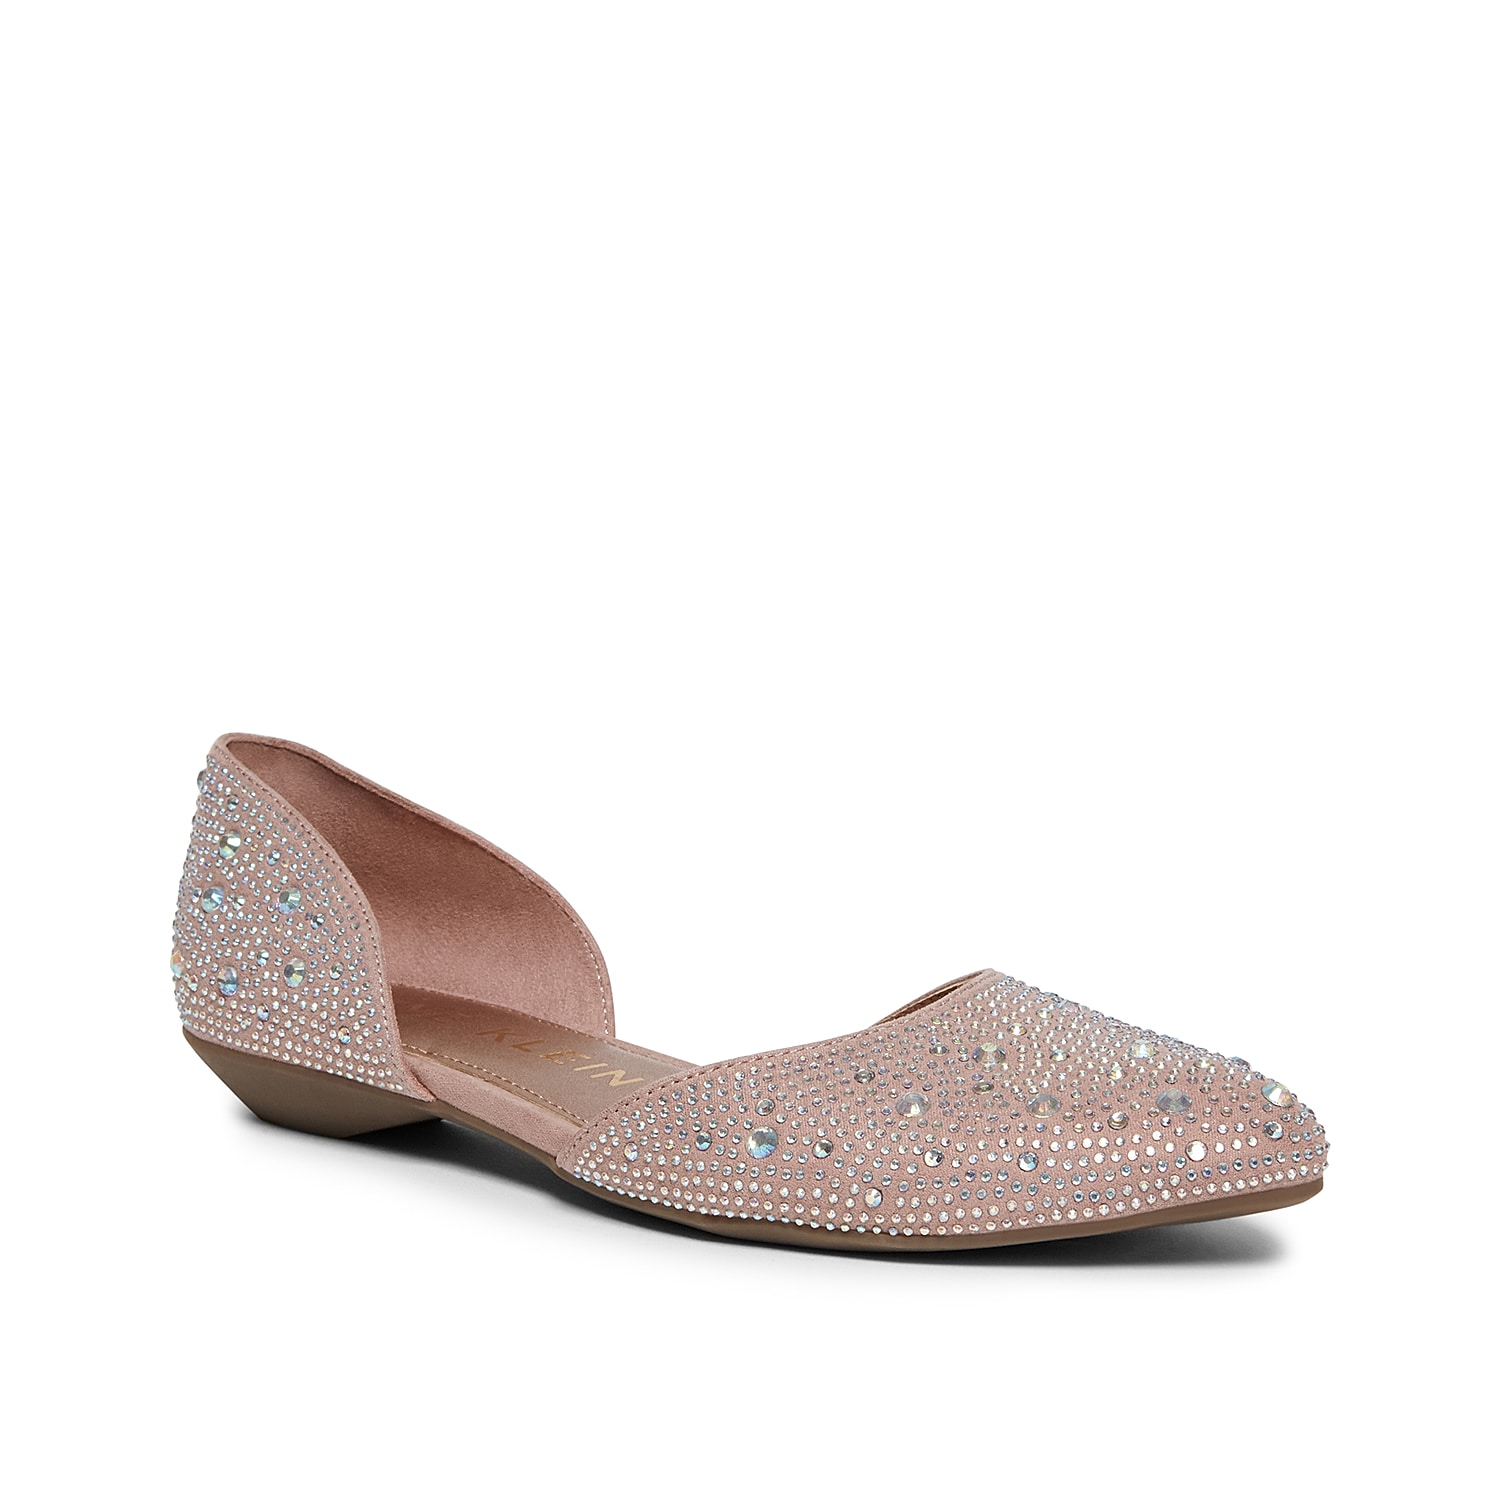 Add subtle glam to your ensemble with the Onyx flat from Anne Klein. This silhouette is fashioned with rhinestone accents and an iFlex rubber sole for all the comfort!